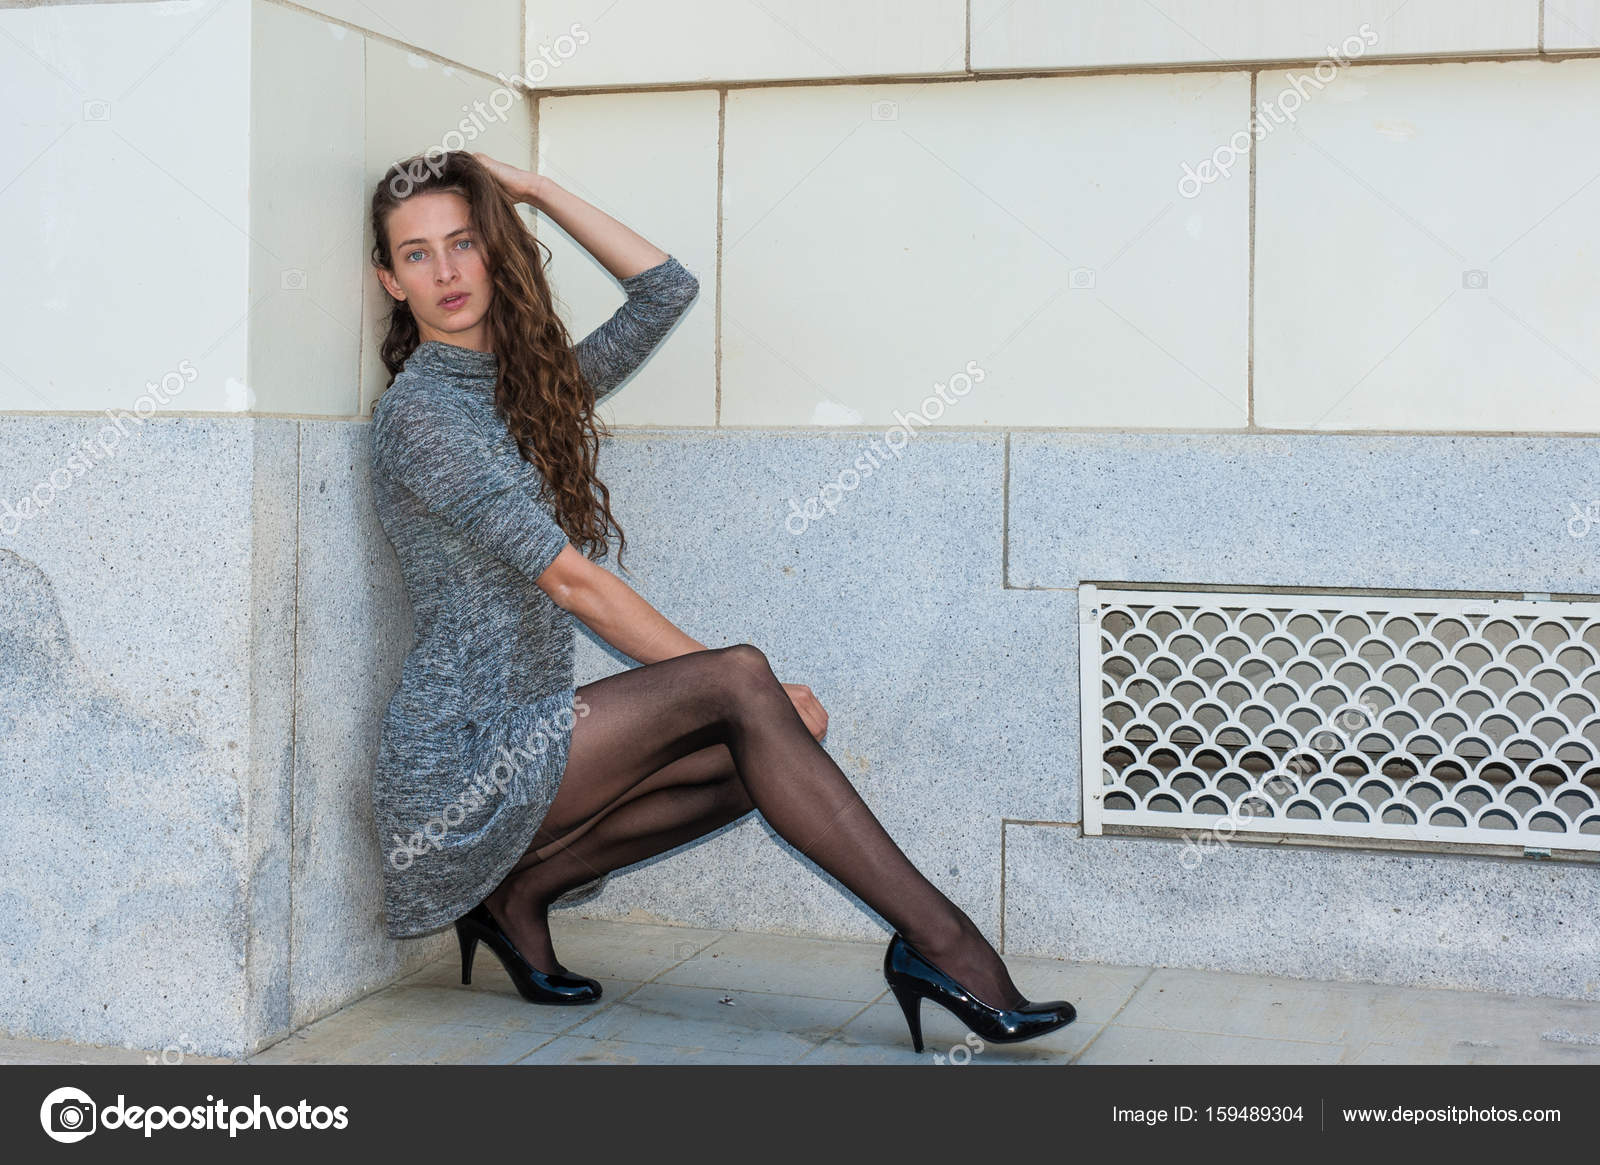 Black Hosiery Against White Wall Stock Photo Image By C Motionshooter 159489304